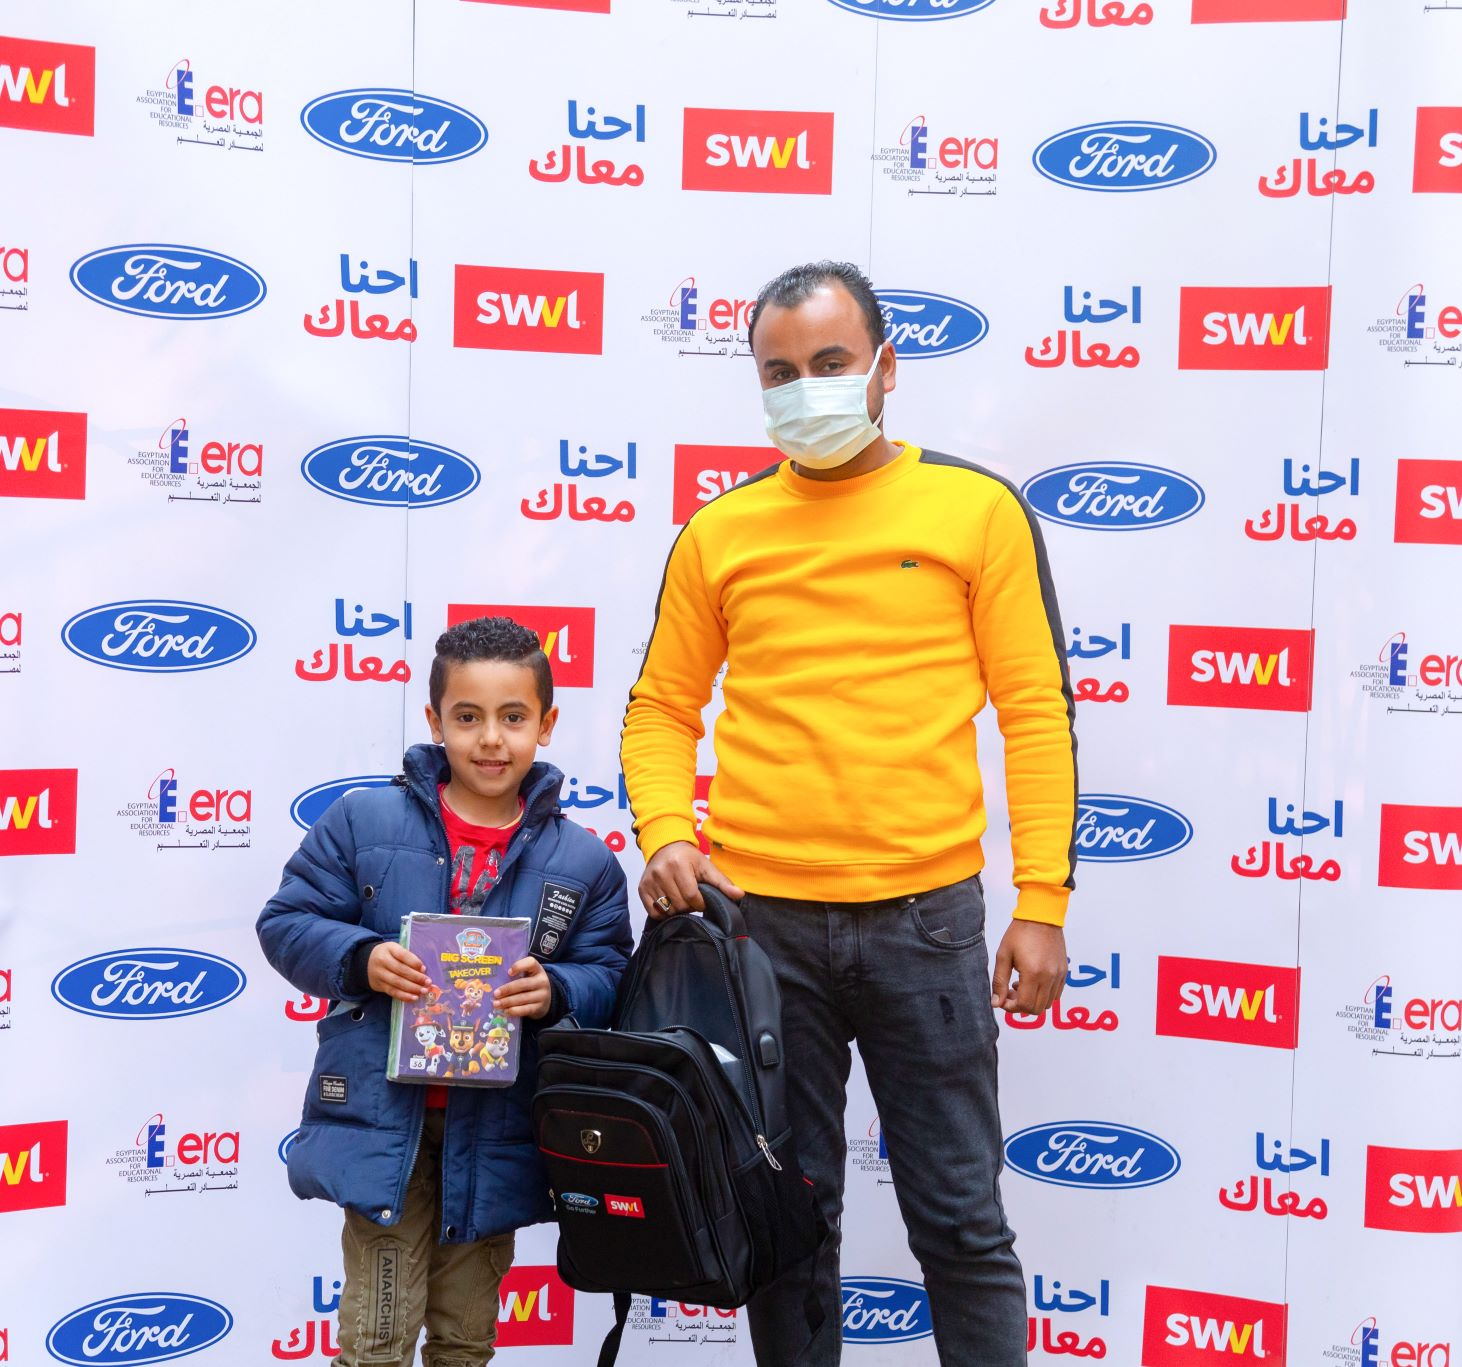 Ford and Ford Fund Donate EGP600,000 For Vital Education and Healthcare Supplies for SWVL Captains Children as They Return to School for The Second Academic Period